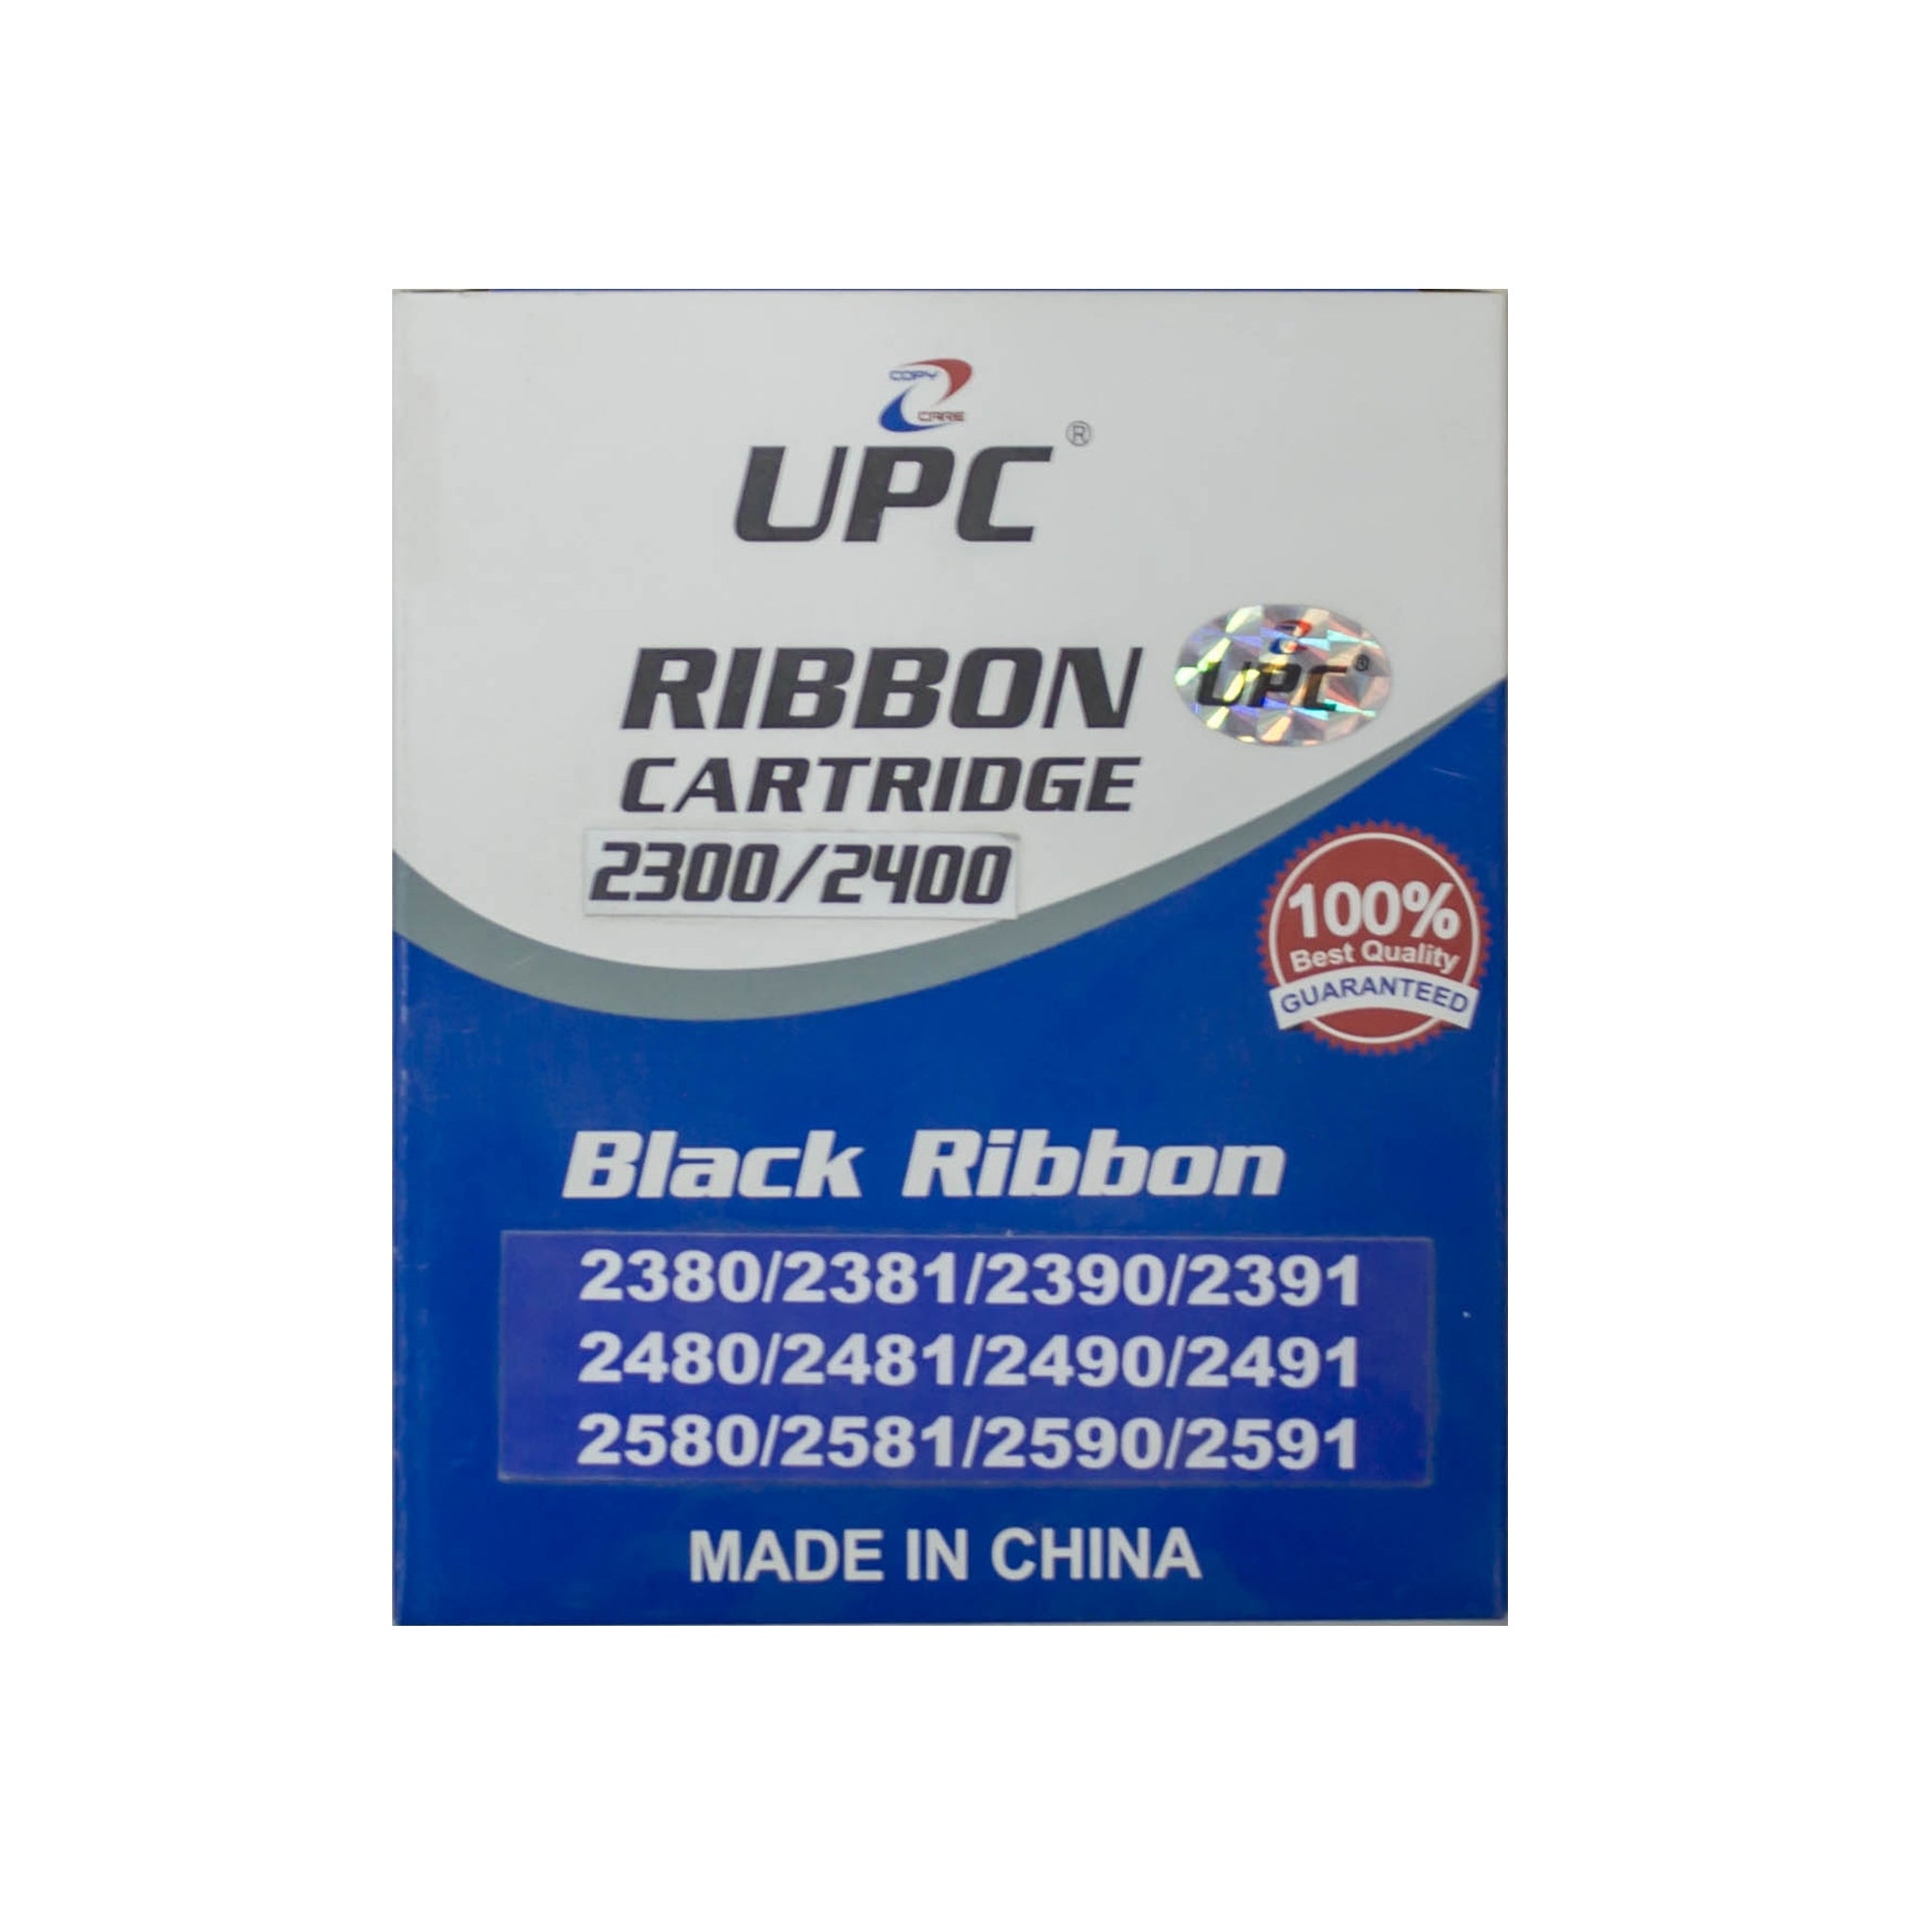 UPC 2300 l 2400 Black Ribbon Compatible with Lexmark 2300/2400/2500 Series